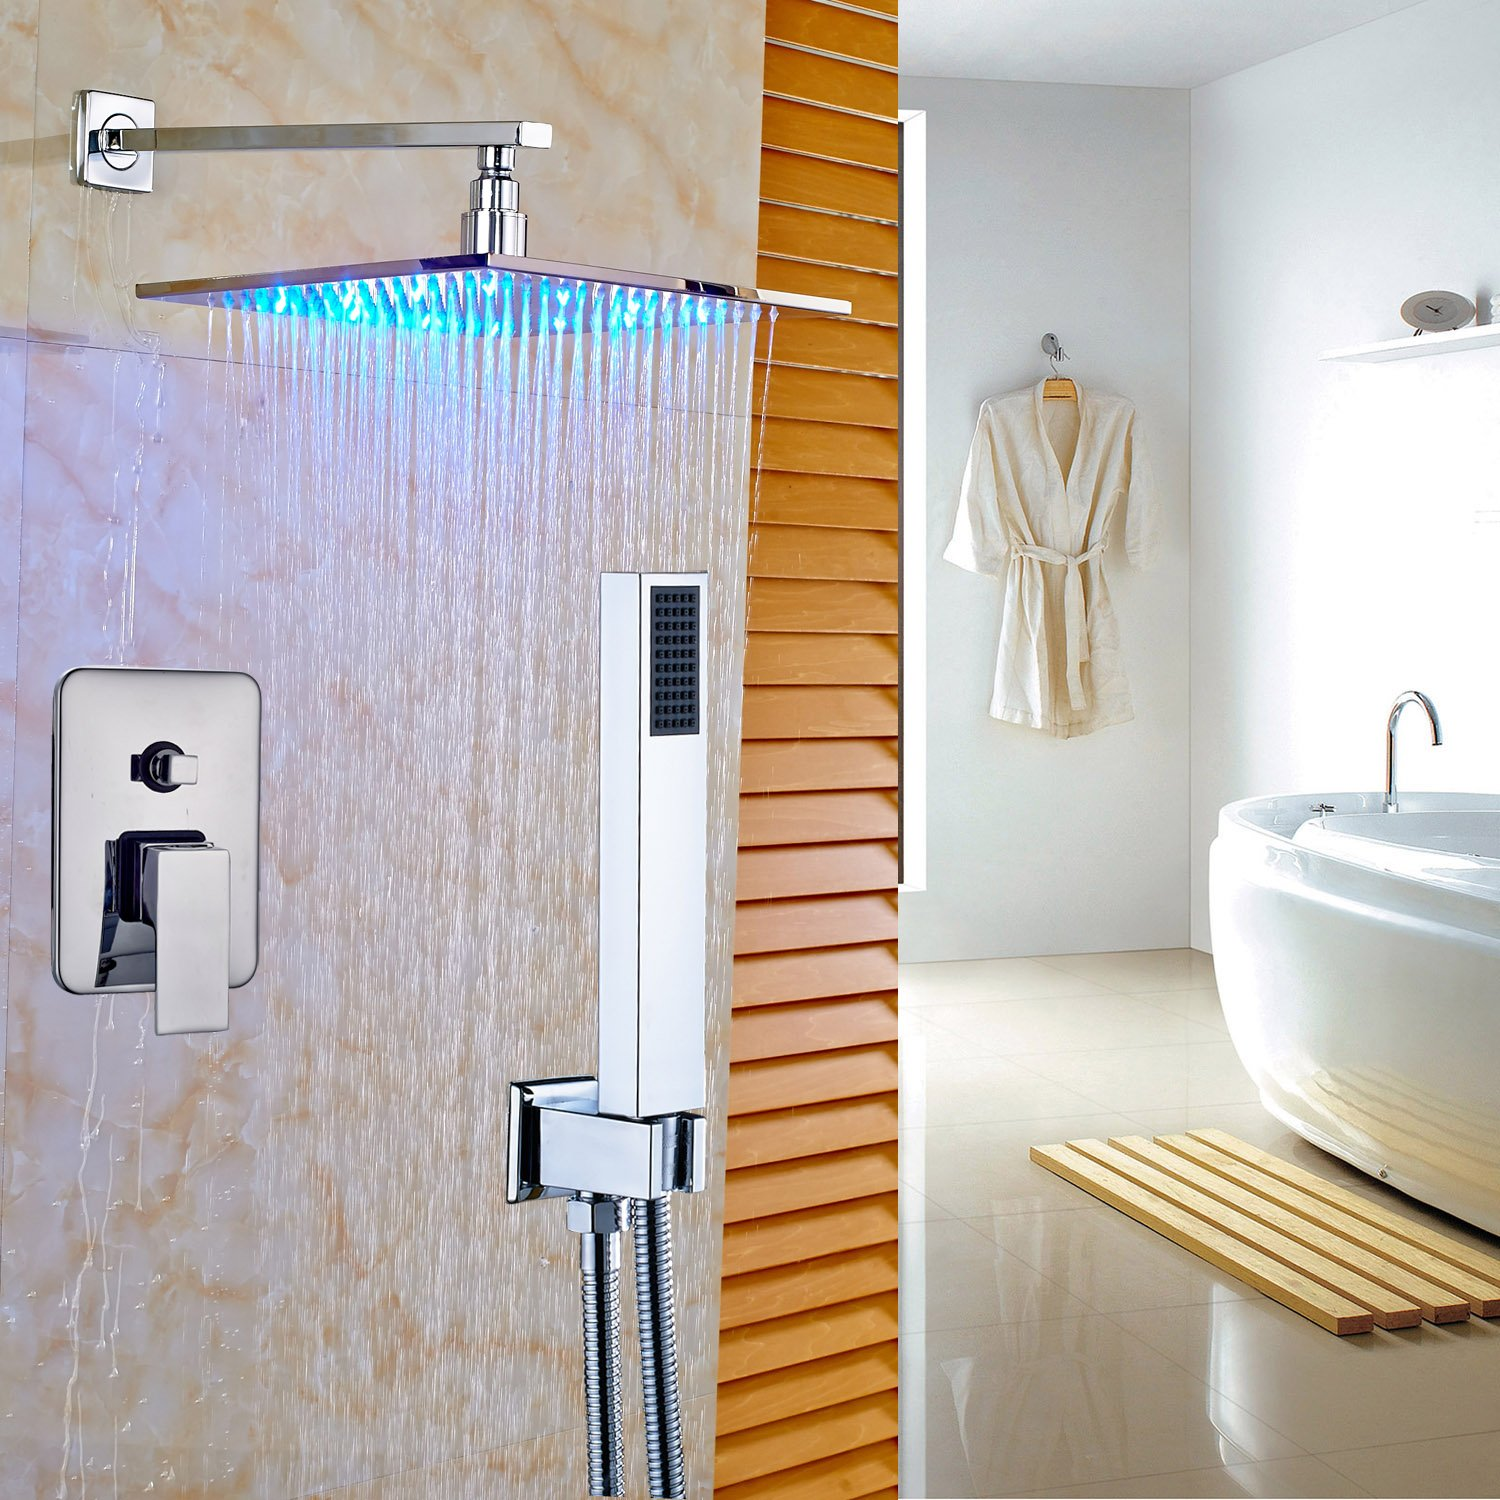 Rozin Bath 2-way Mixer Shower Set LED Light 12'' Square Rainfall Shower with Handheld Spray Chrome Finish by Rozin